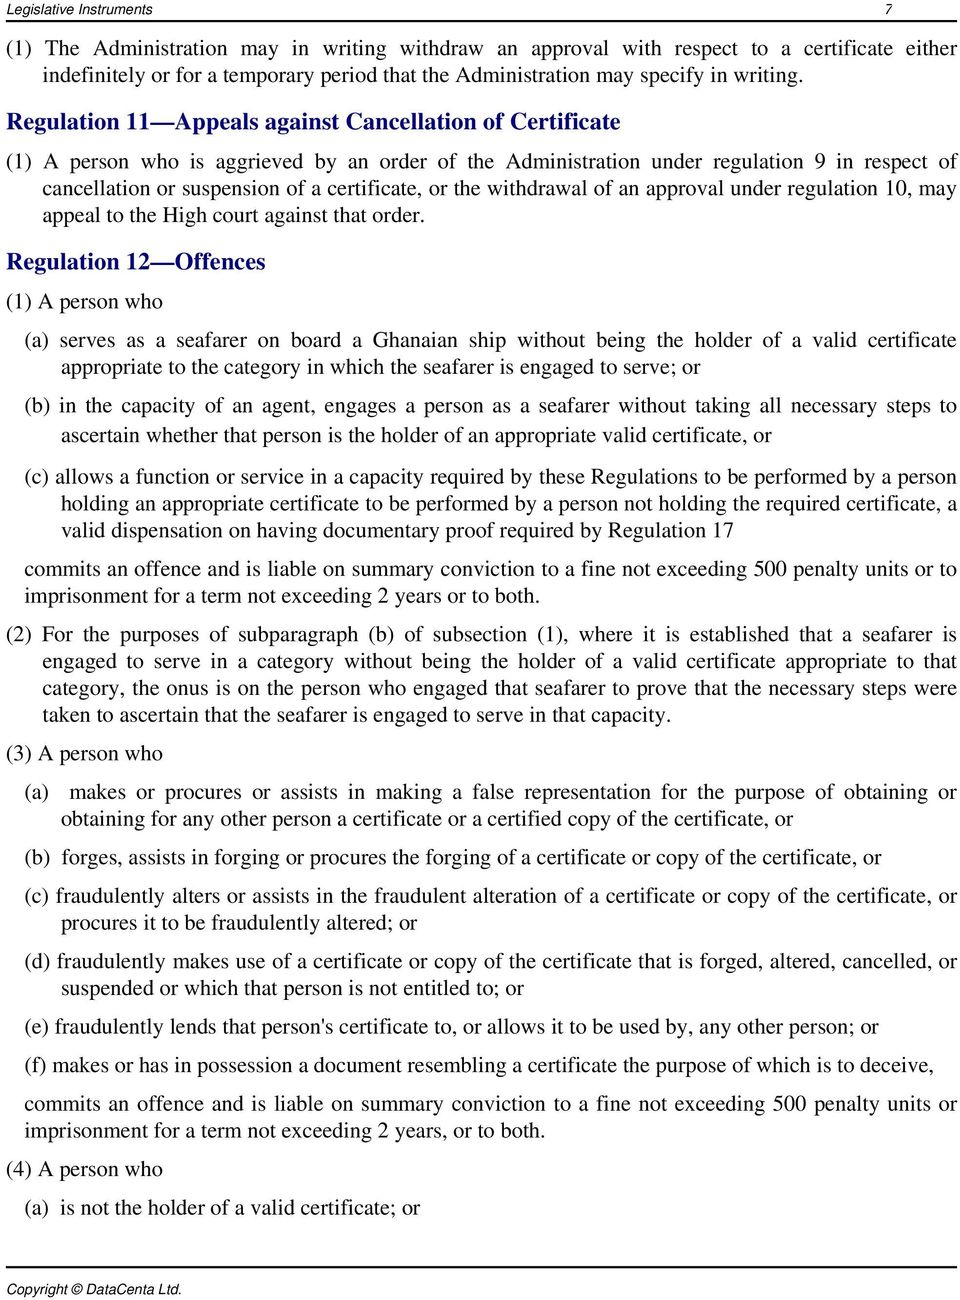 Regulation 11 Appeals against Cancellation of Certificate (1) A person who is aggrieved by an order of the Administration under regulation 9 in respect of cancellation or suspension of a certificate,